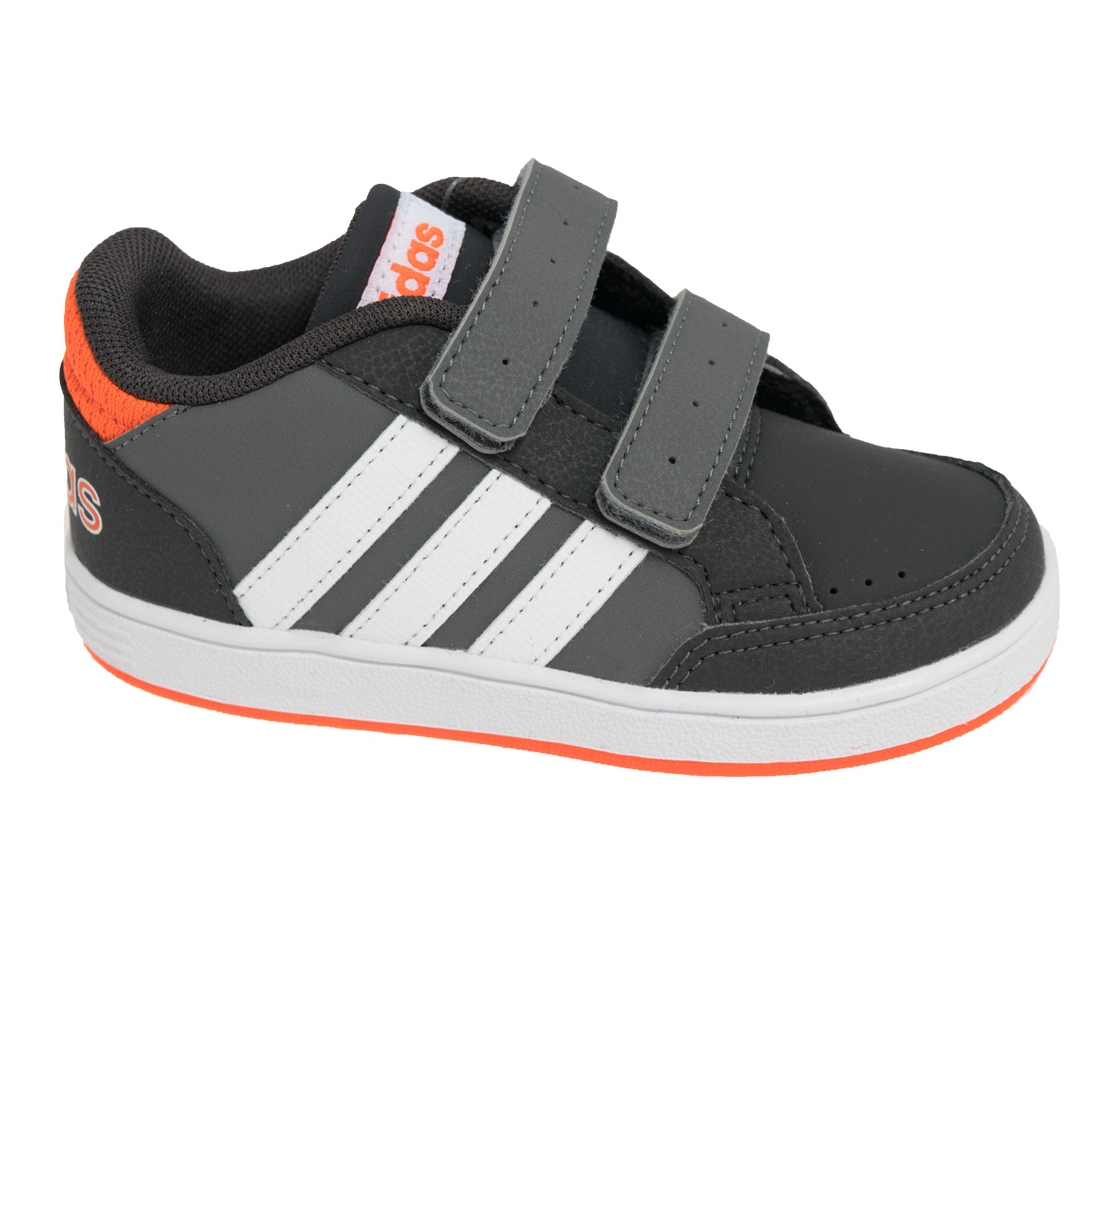 adidas Bebe Παπούτσι Μόδας Hoops Cmf Inf AQ1660